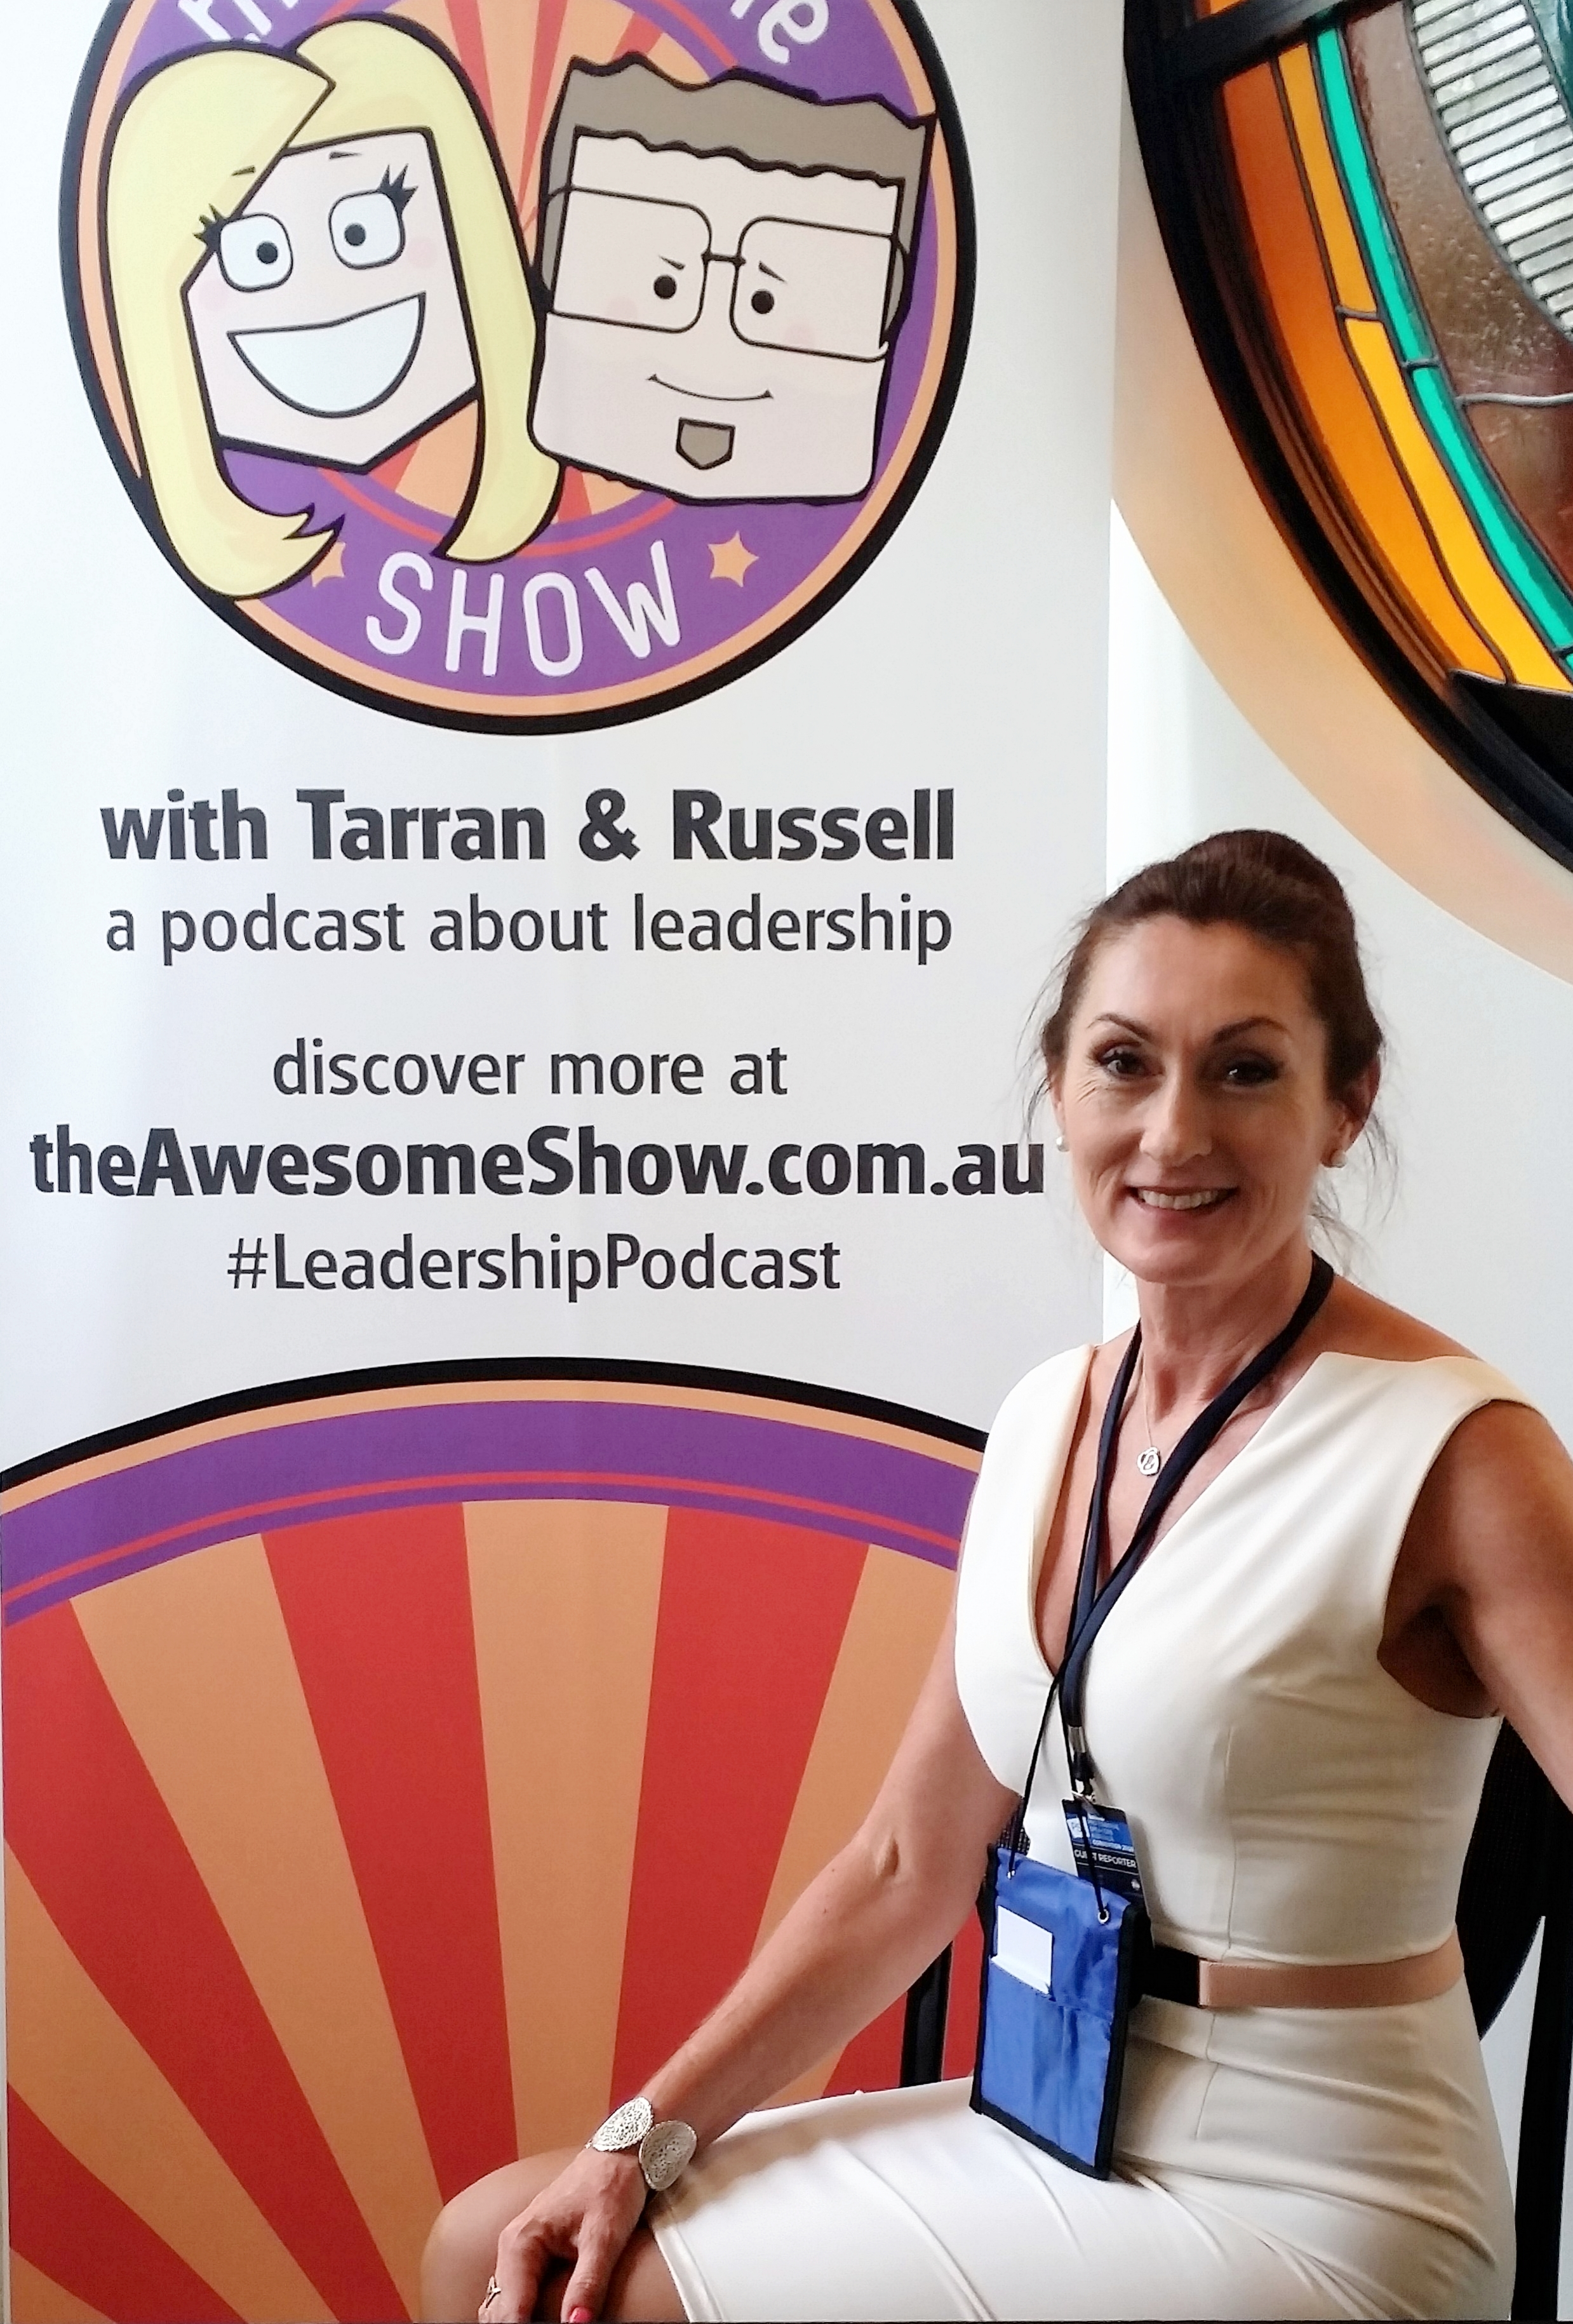 Professional Speakers Convention 2016, Gold Coast